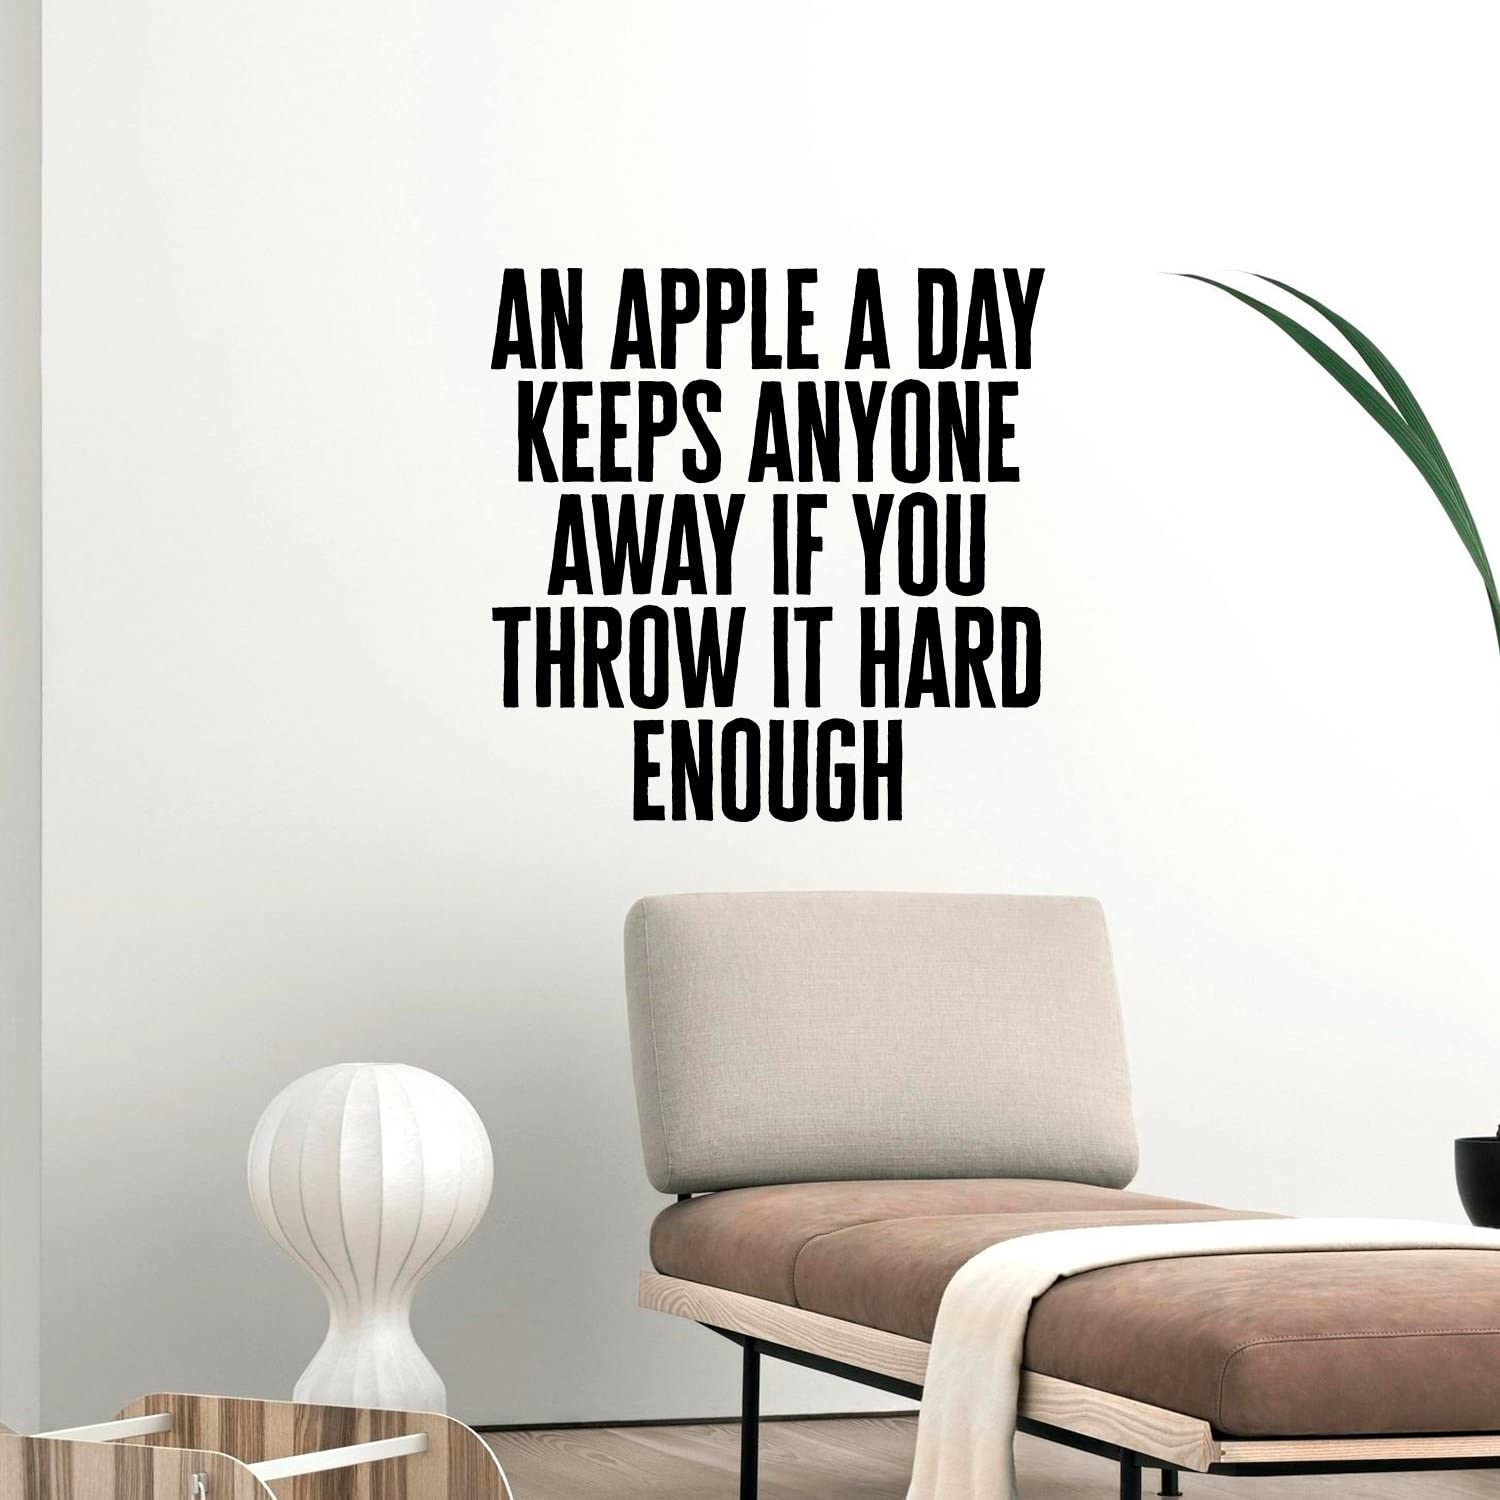 Vinyl Wall Art Decal - an Apple a Day Keeps Anyone Away If You Throw It Hard Enough 23